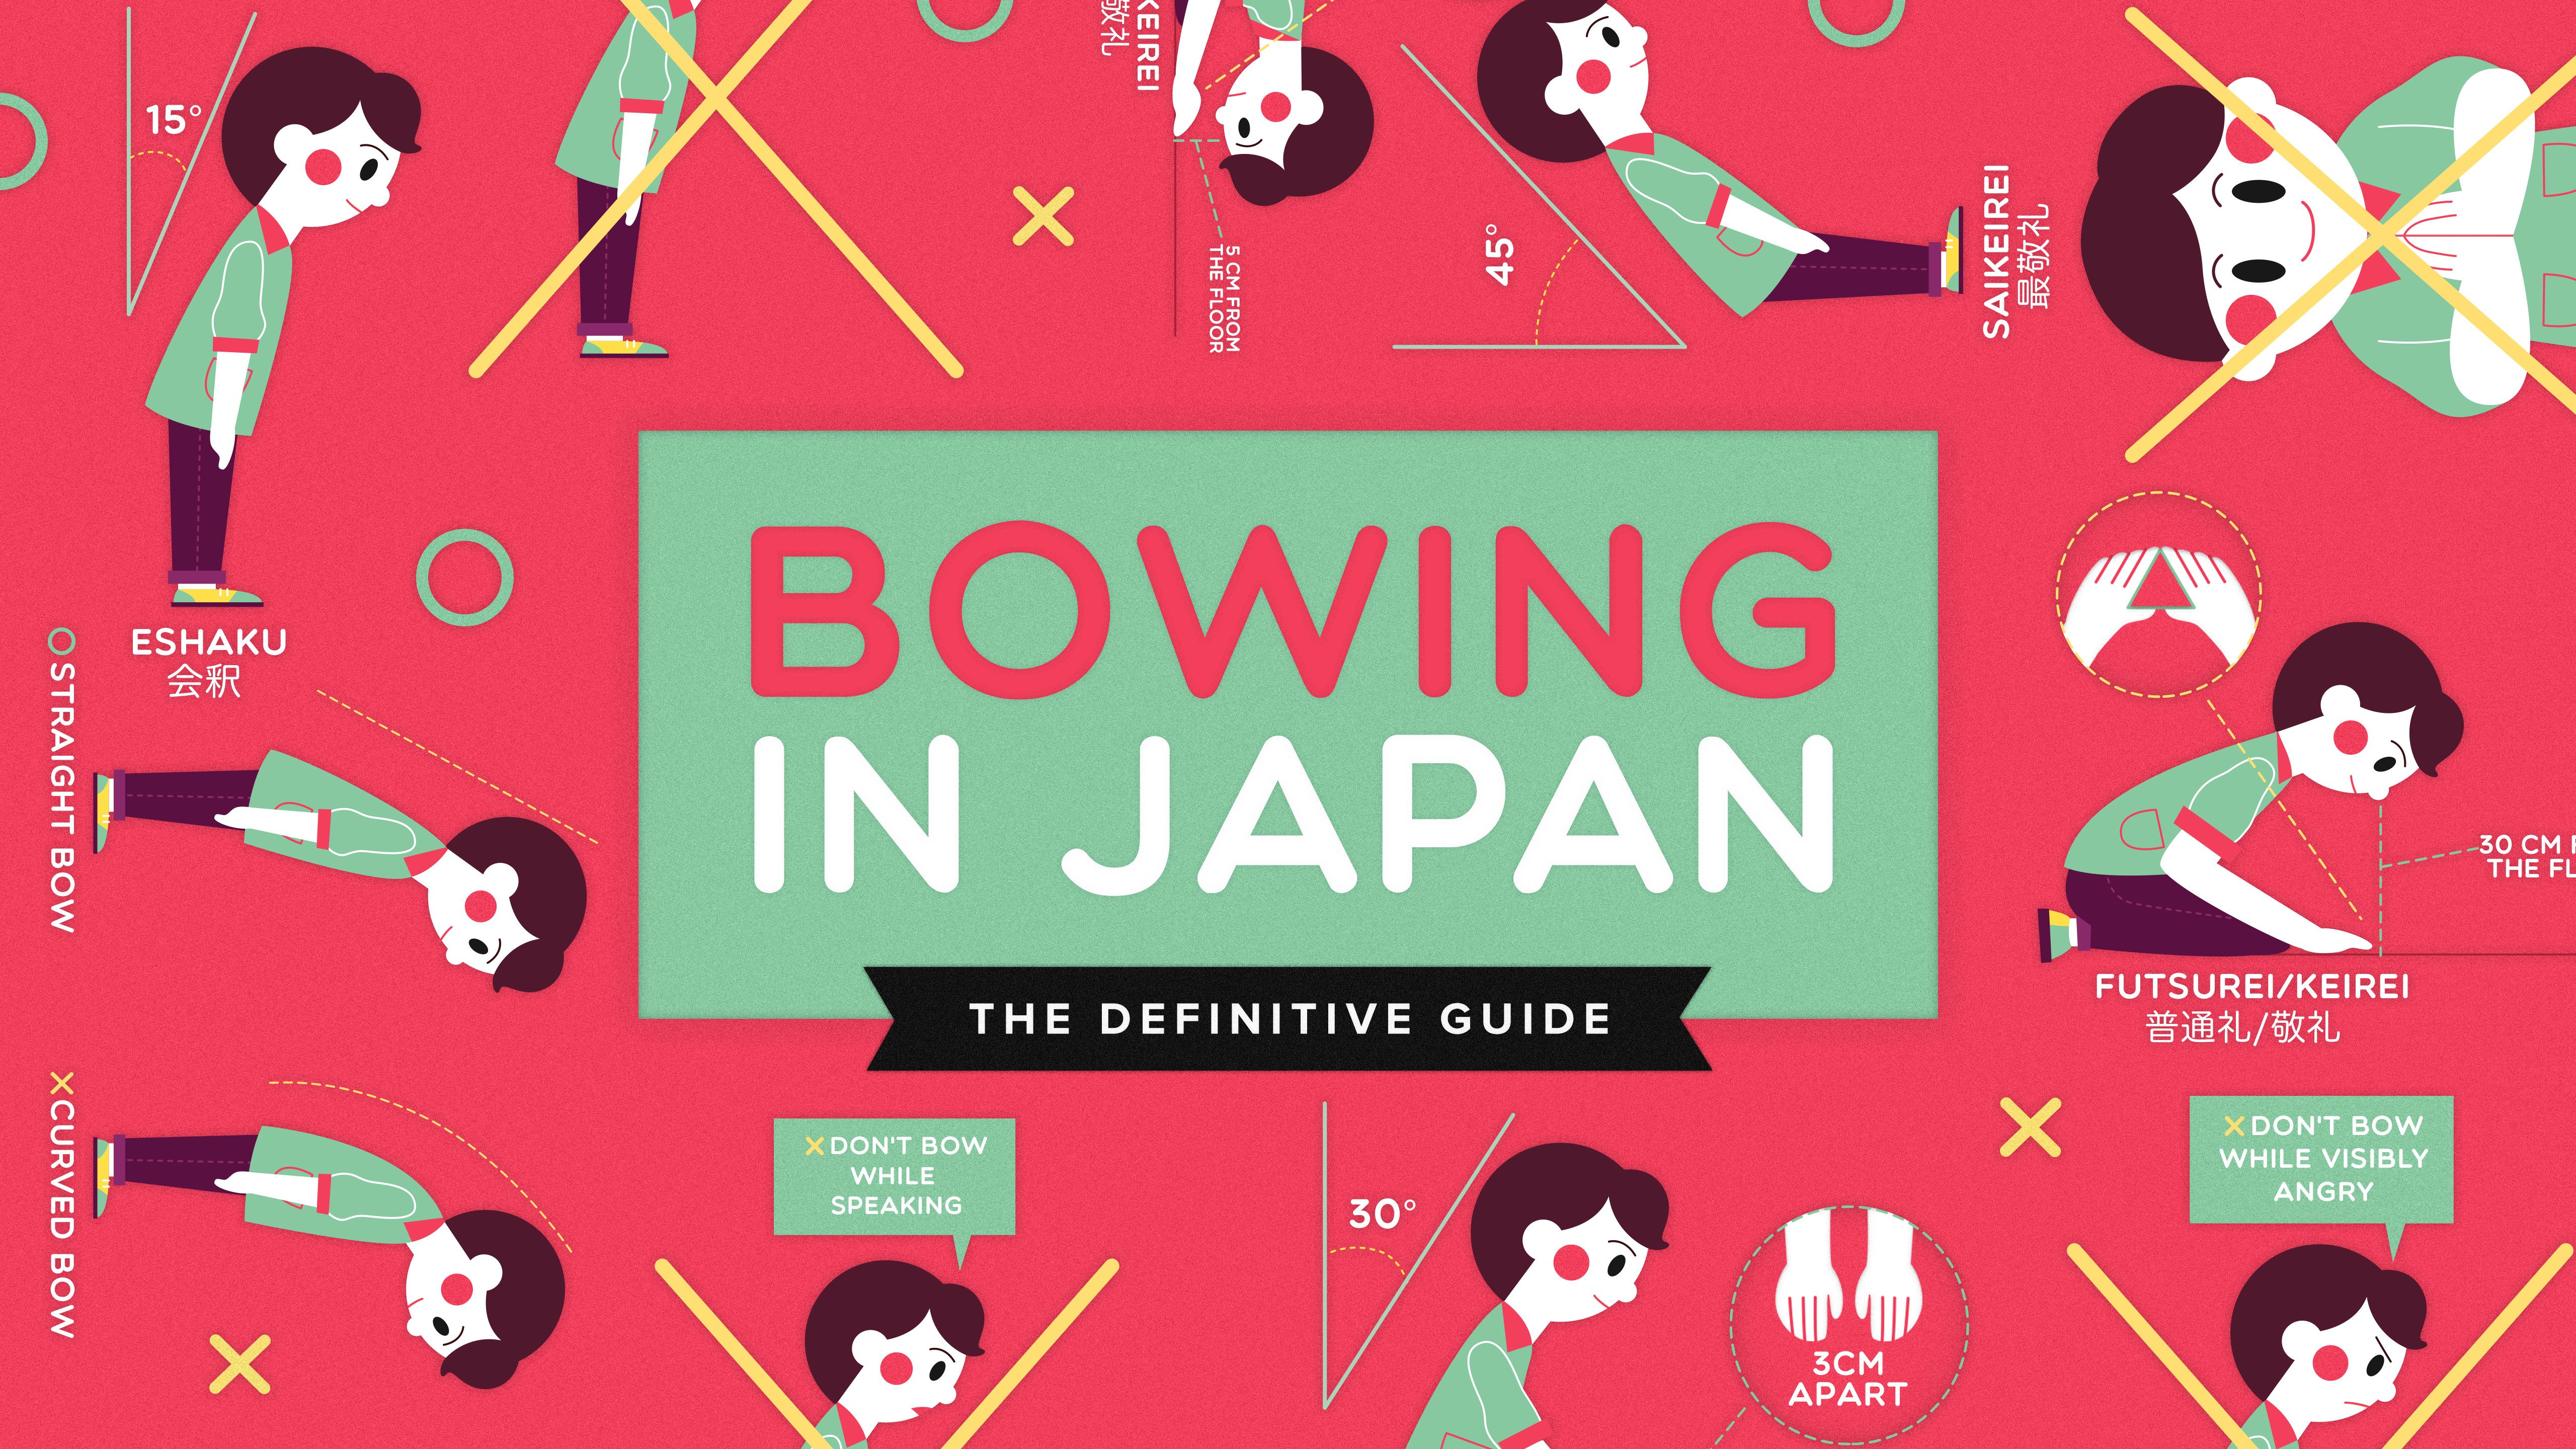 Japan clipart bow japanese. Bowing in life the